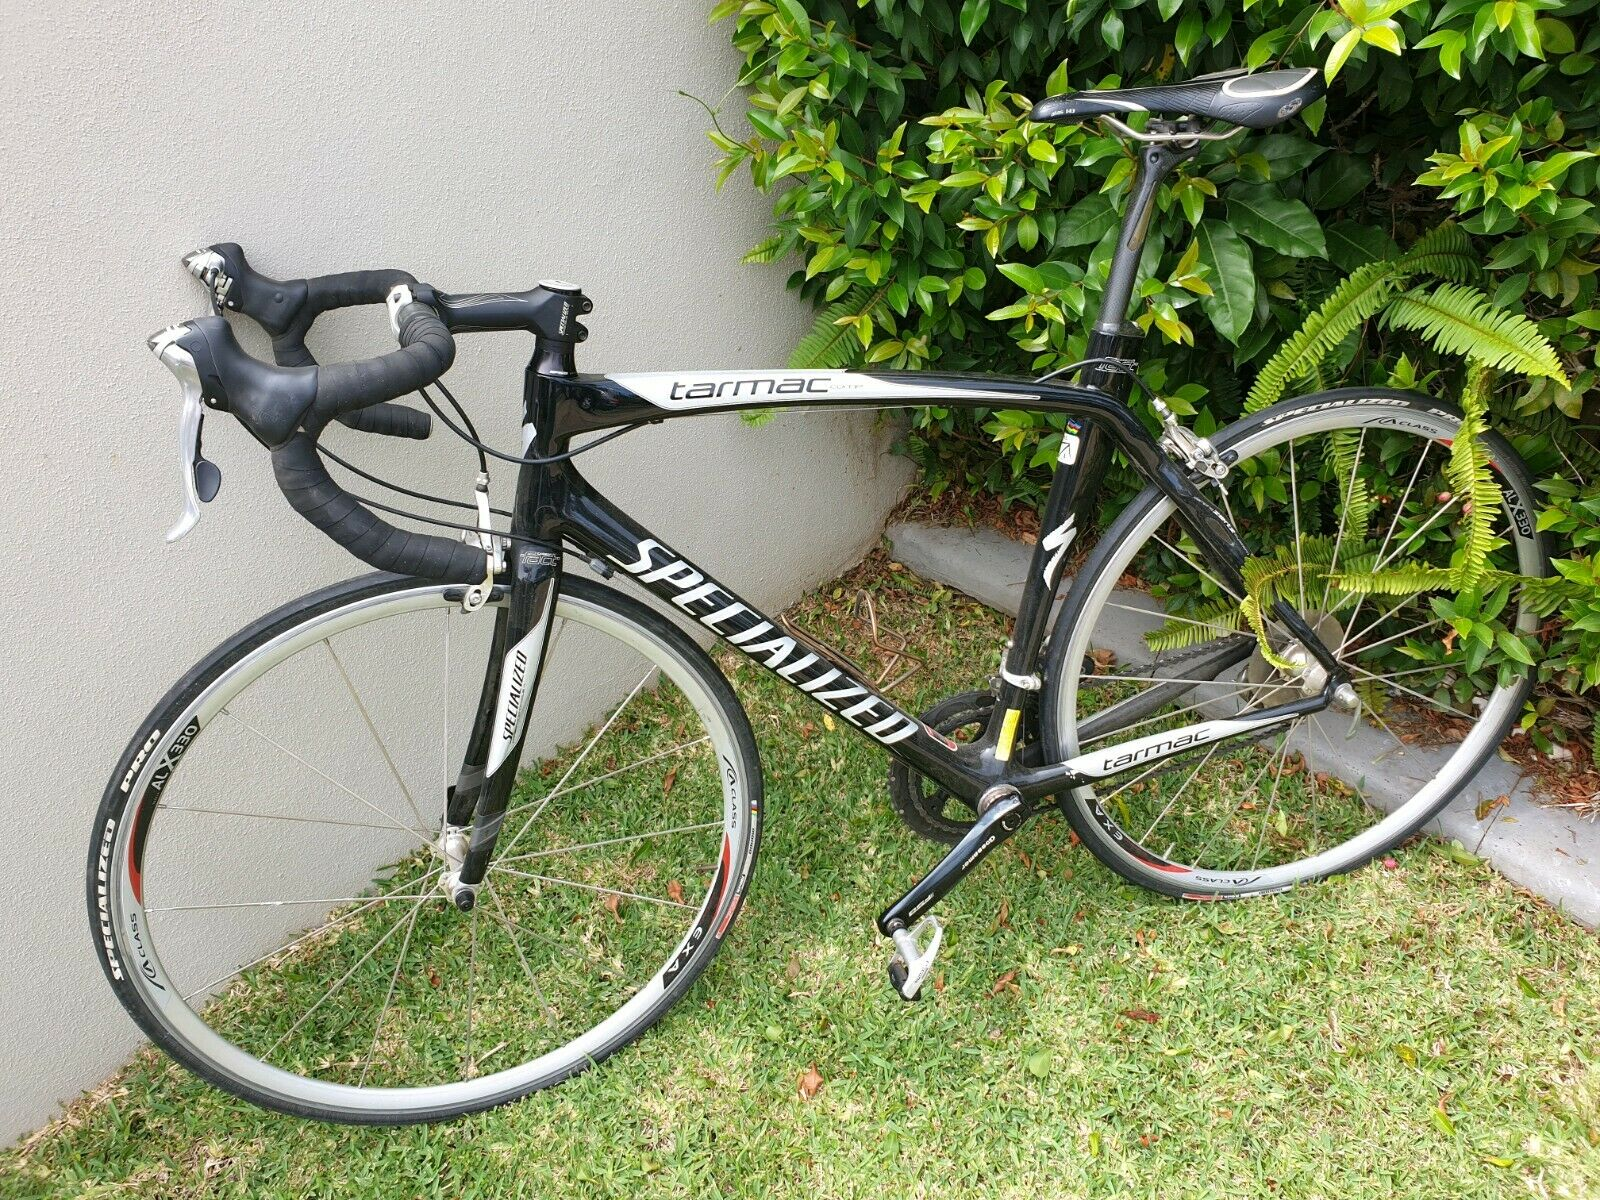 New Specialized S-Works Road Bike Chainring 39T 10 speed